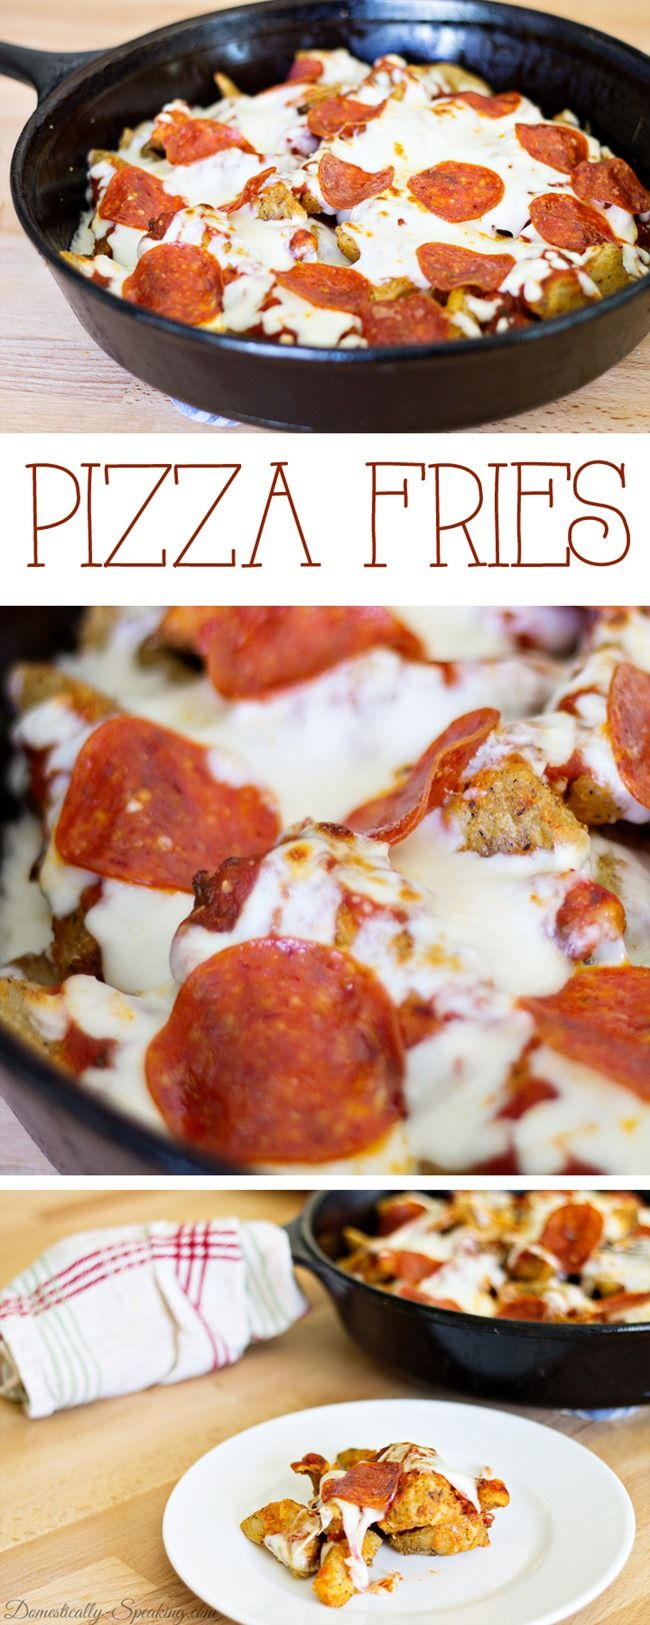 Pizza Fries - perfect football food!